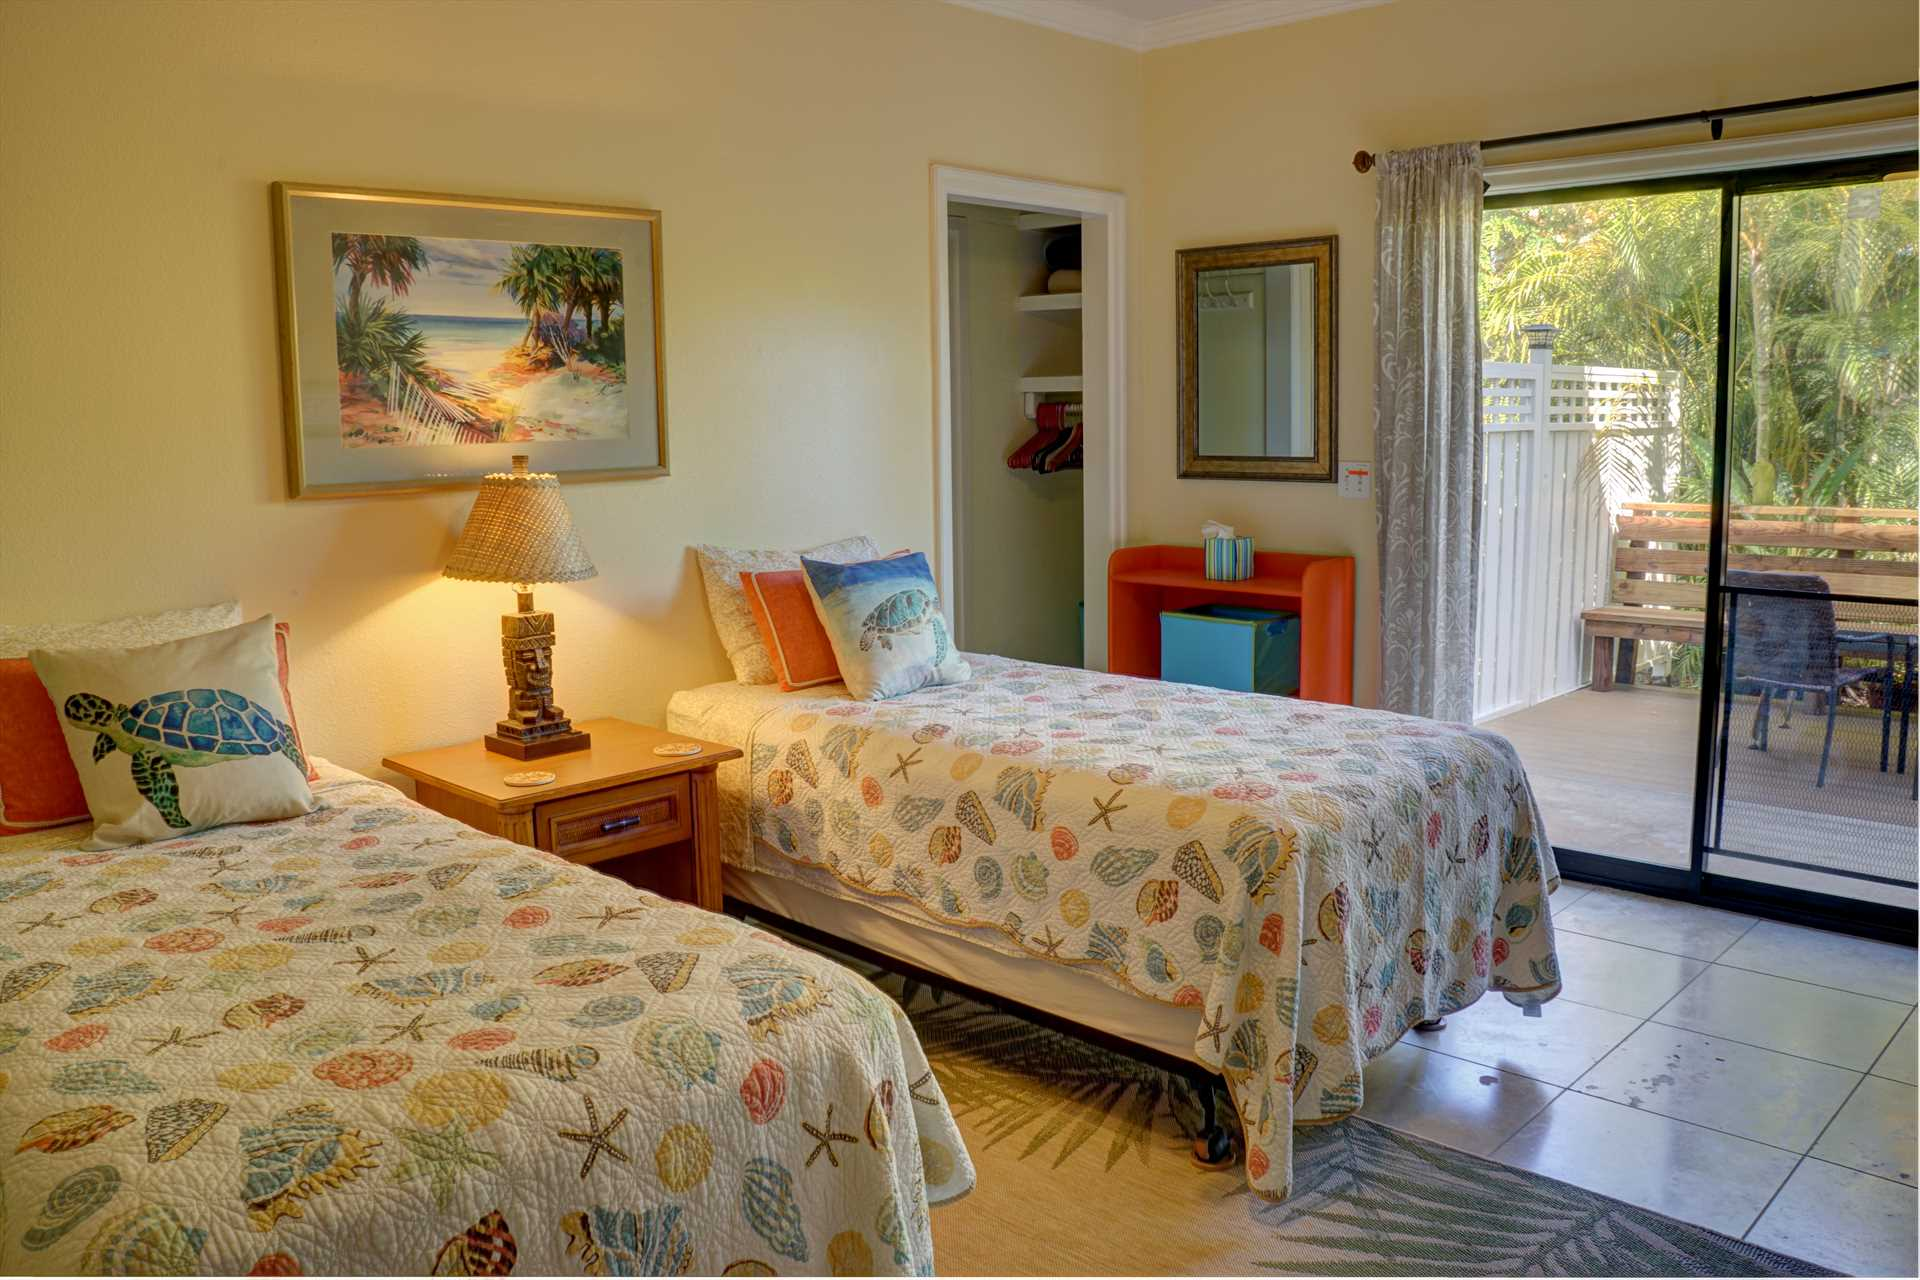 Honu room, twin beds can be made into a king bed